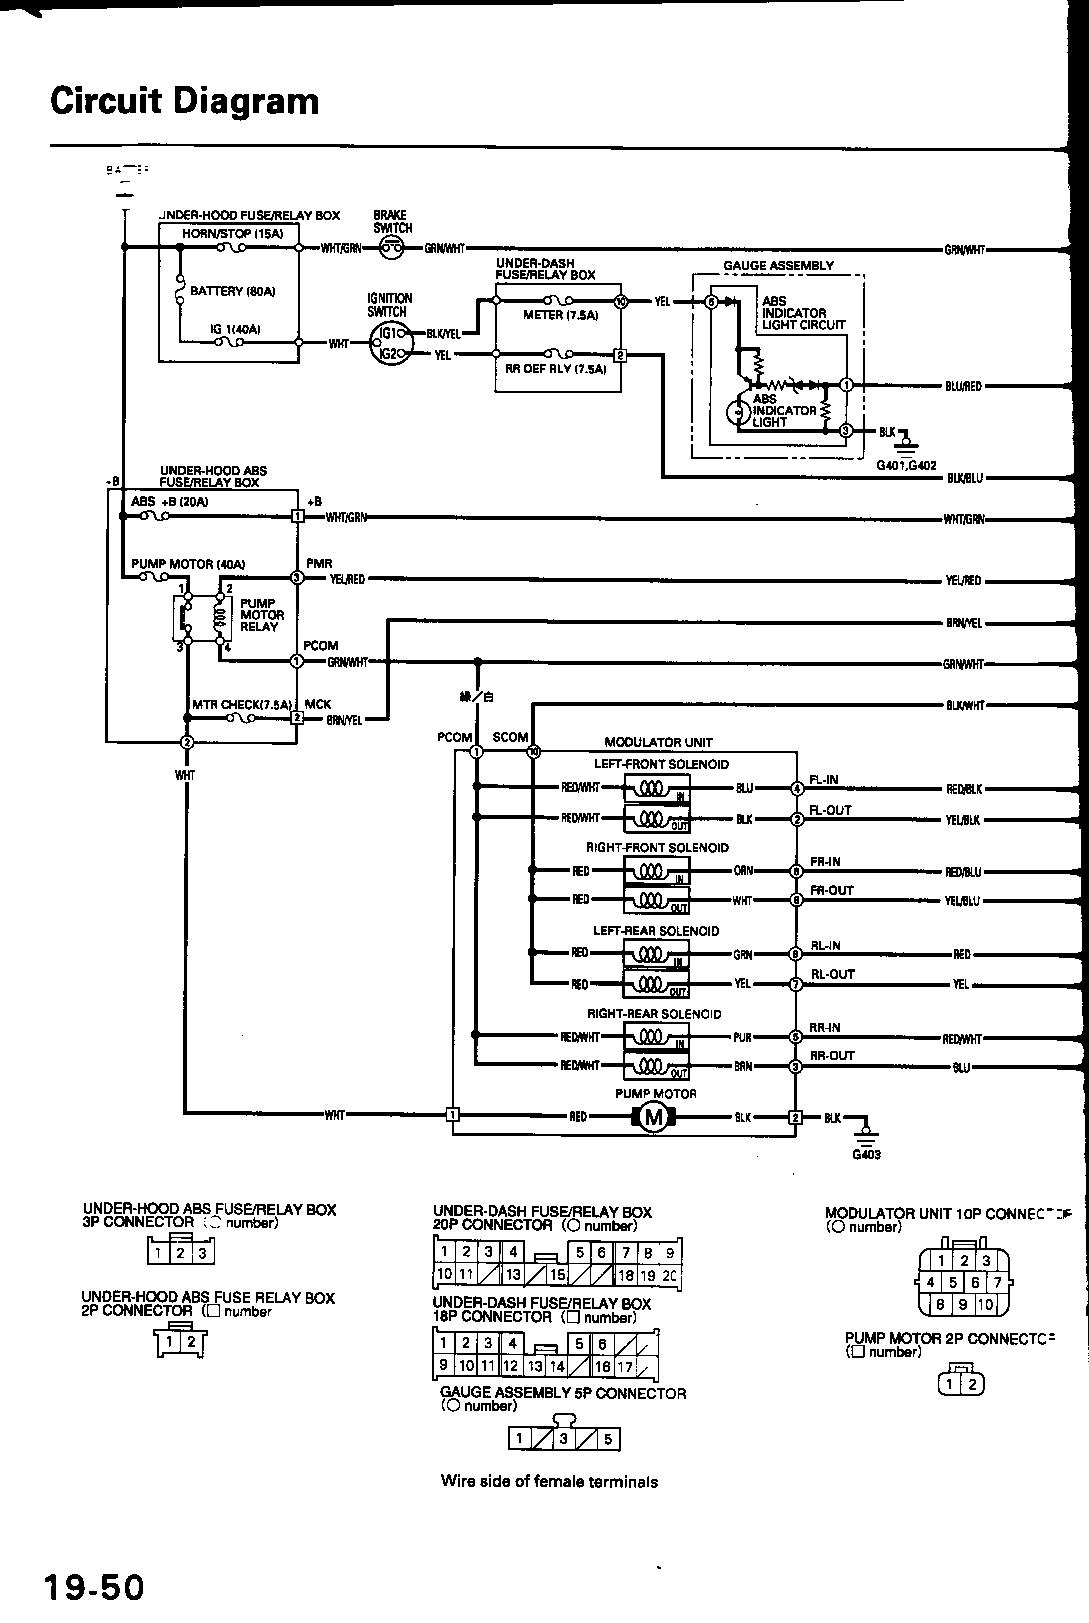 2007 honda civic stereo wiring diagram where to shoot a deer with rifle 94 speaker get free image